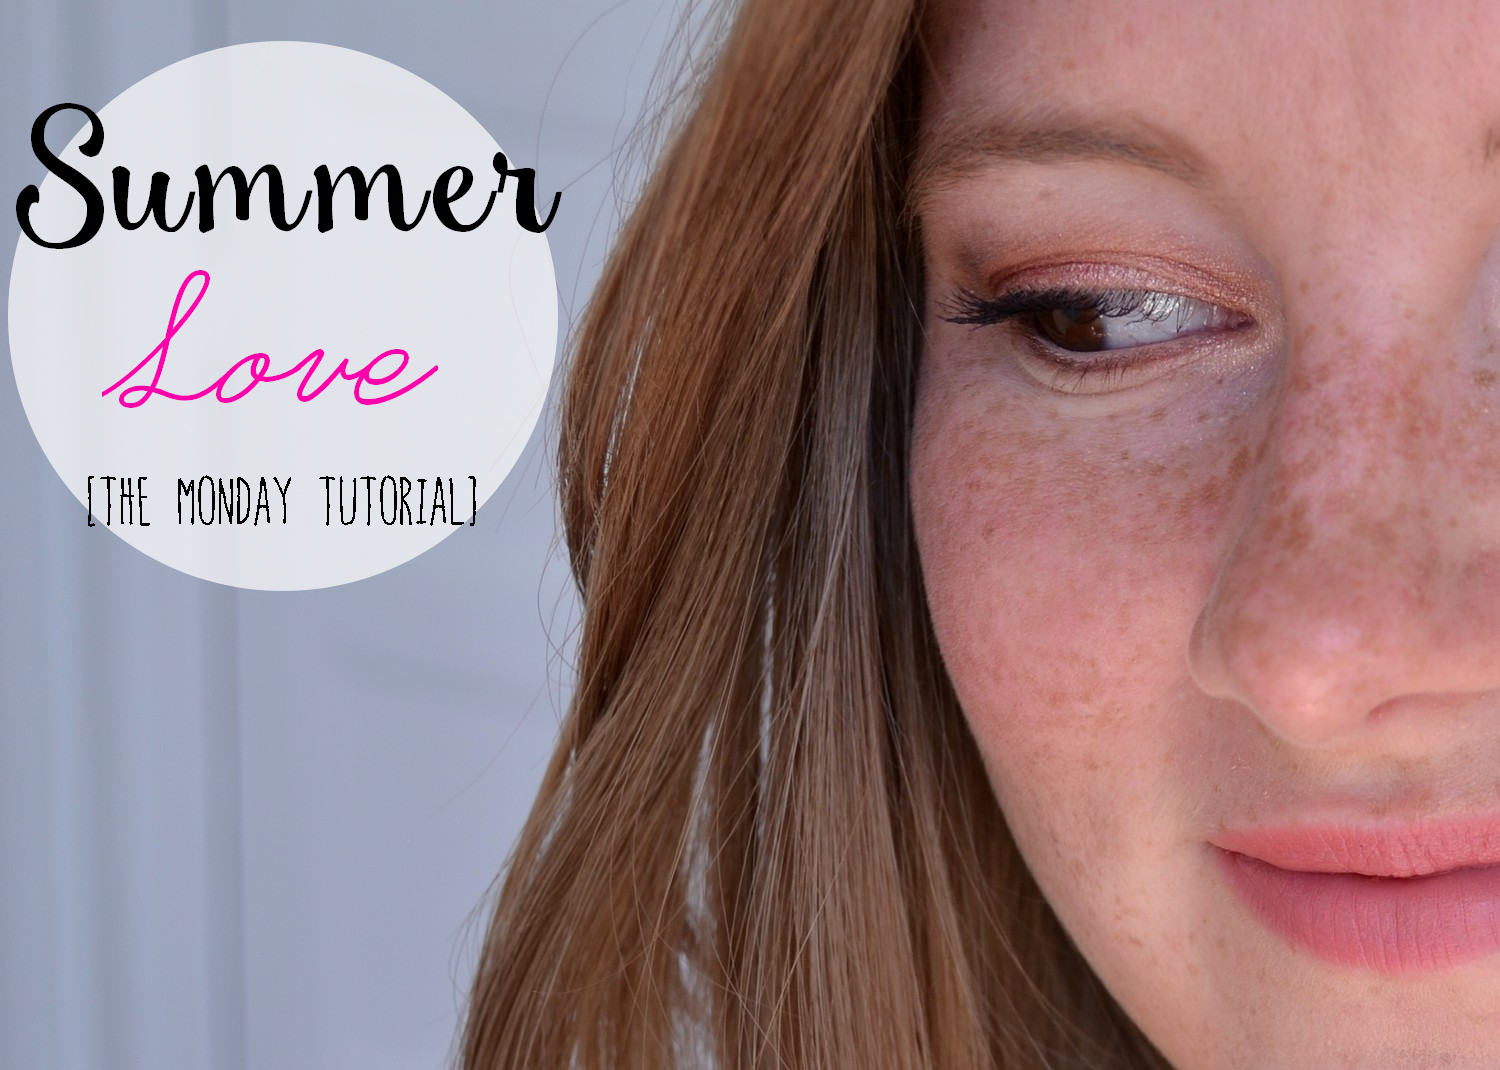 http://www.dreamingsmoothly.com/2015/07/monday-tutorial-summer-love.html